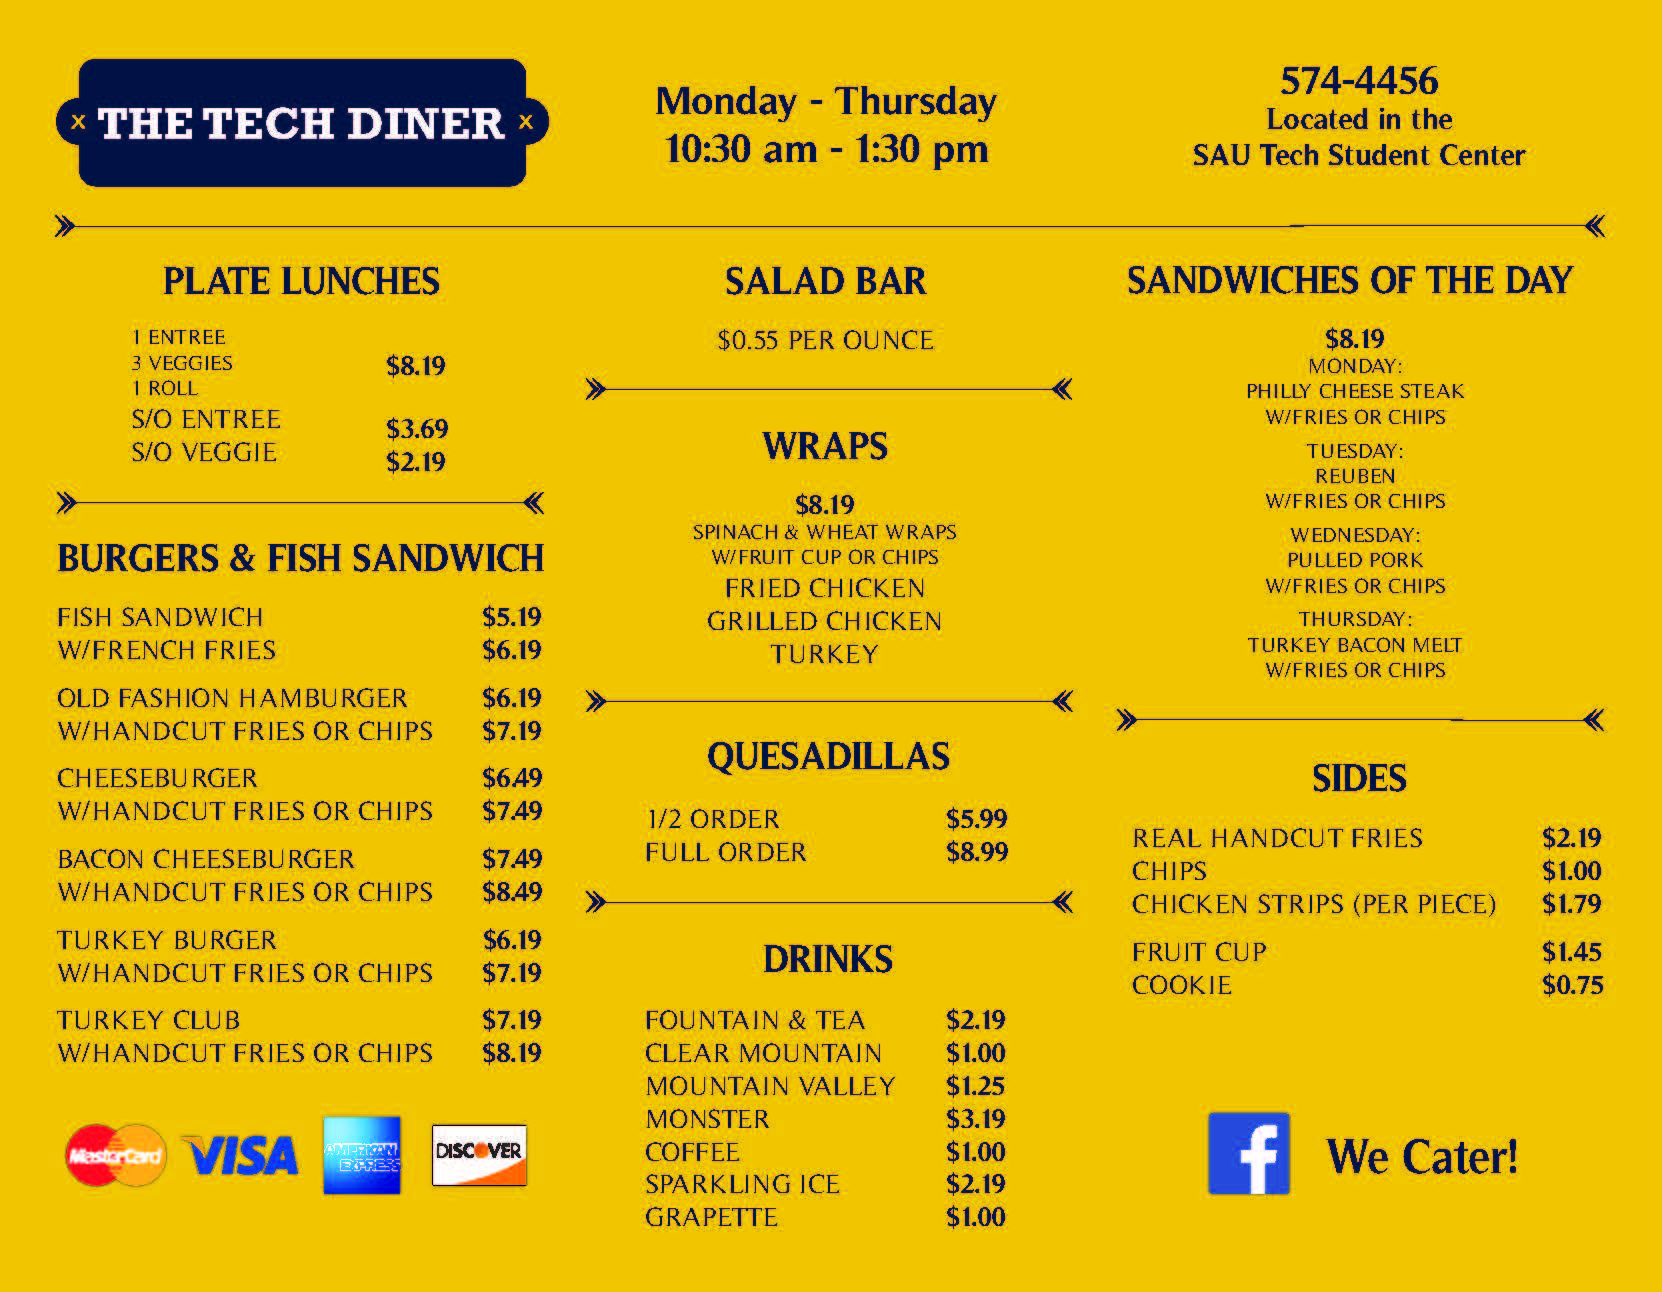 diner menu in yellow